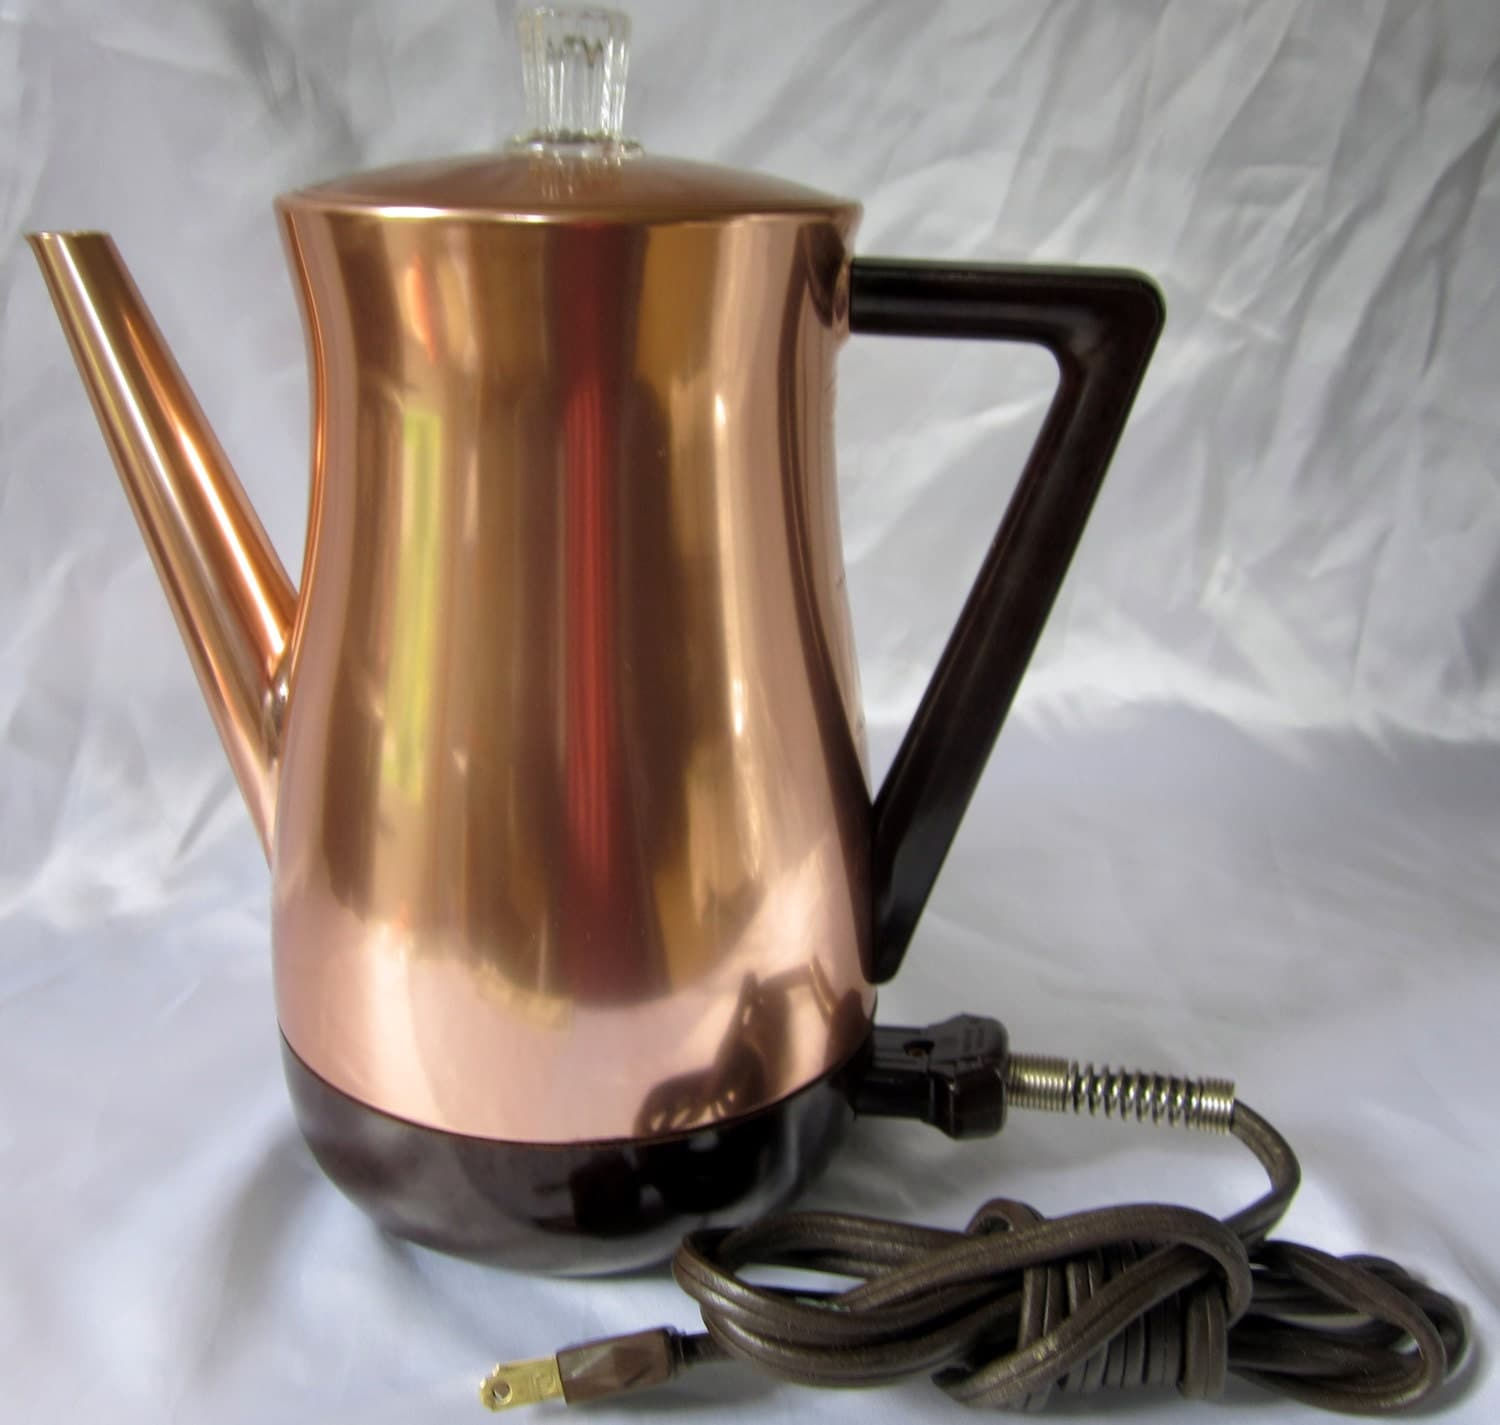 Electric Percolator Coffee Maker Reviews : Electric Coffee Pot Percolator West Bend Copper New Flavo